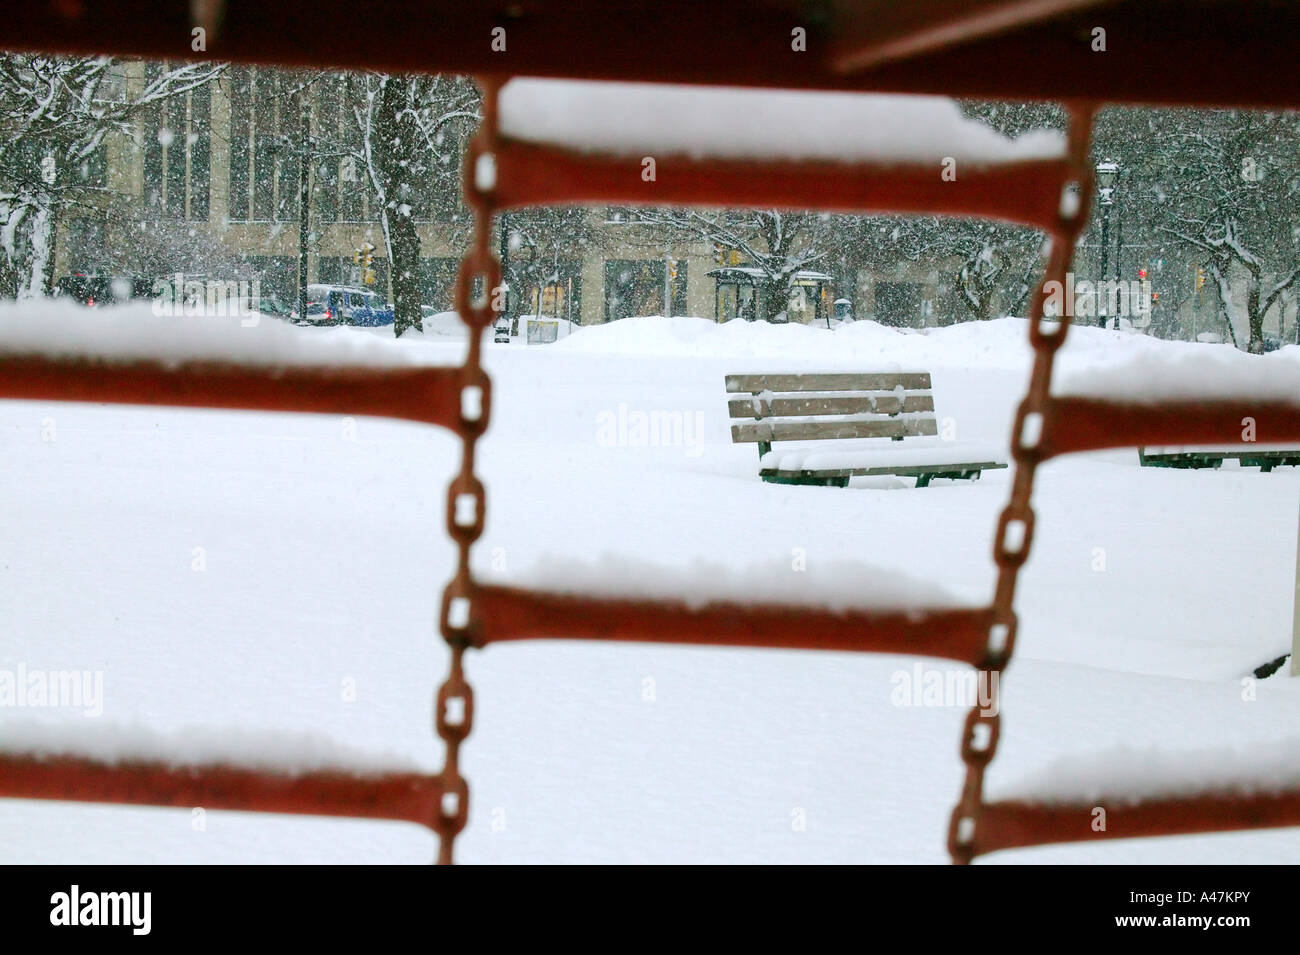 Park bench in the snow seen through play structure steps - Stock Image